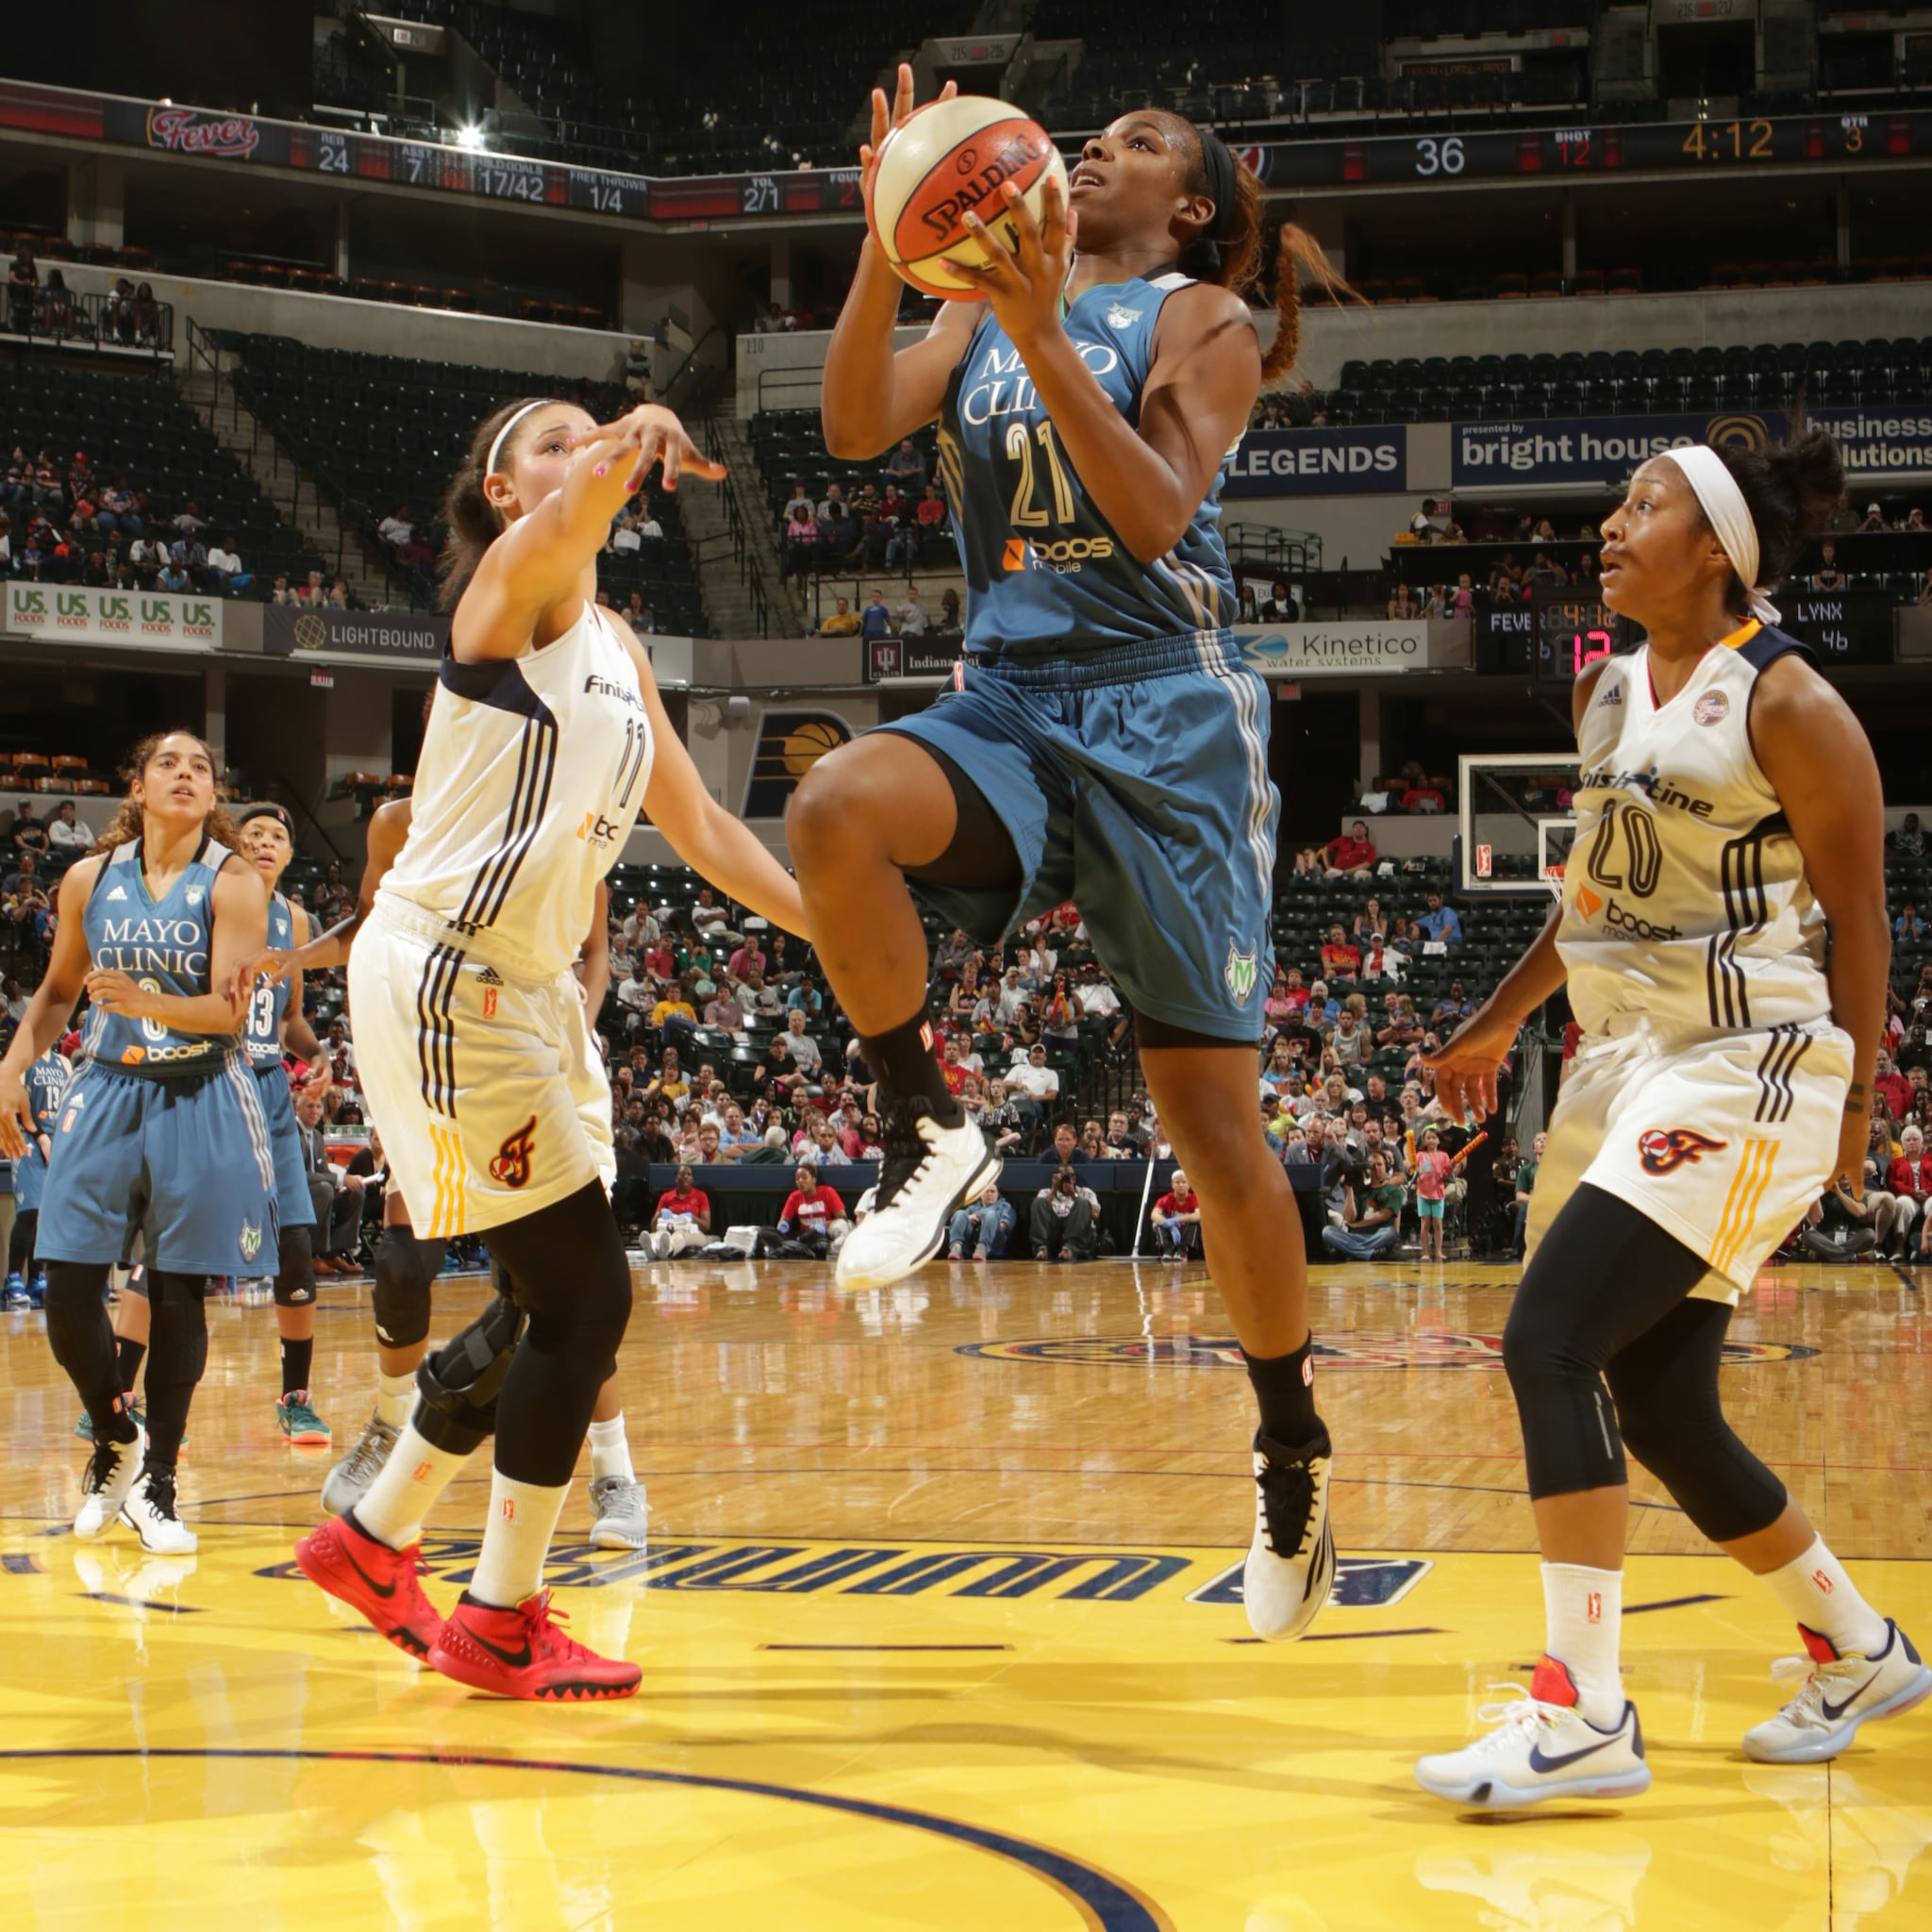 Lynx guard Reshanda Gray made her WNBA regular season debut on Saturday night and scored just two points while grabbing three rebounds and one steal in 10 minutes off the bench.